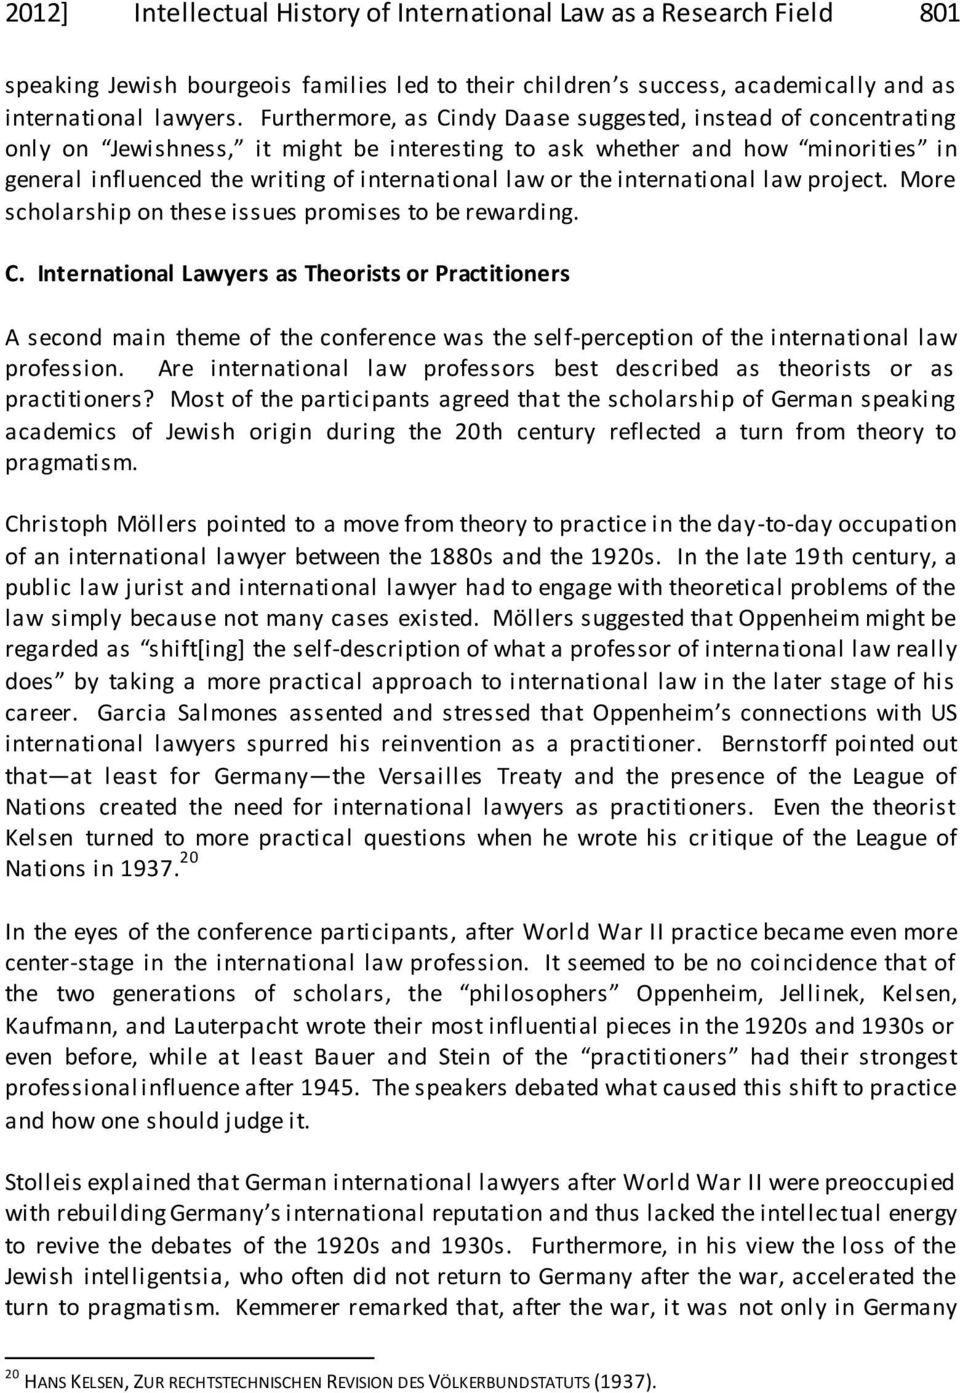 the international law project. More scholarship on these issues promises to be rewarding. C.